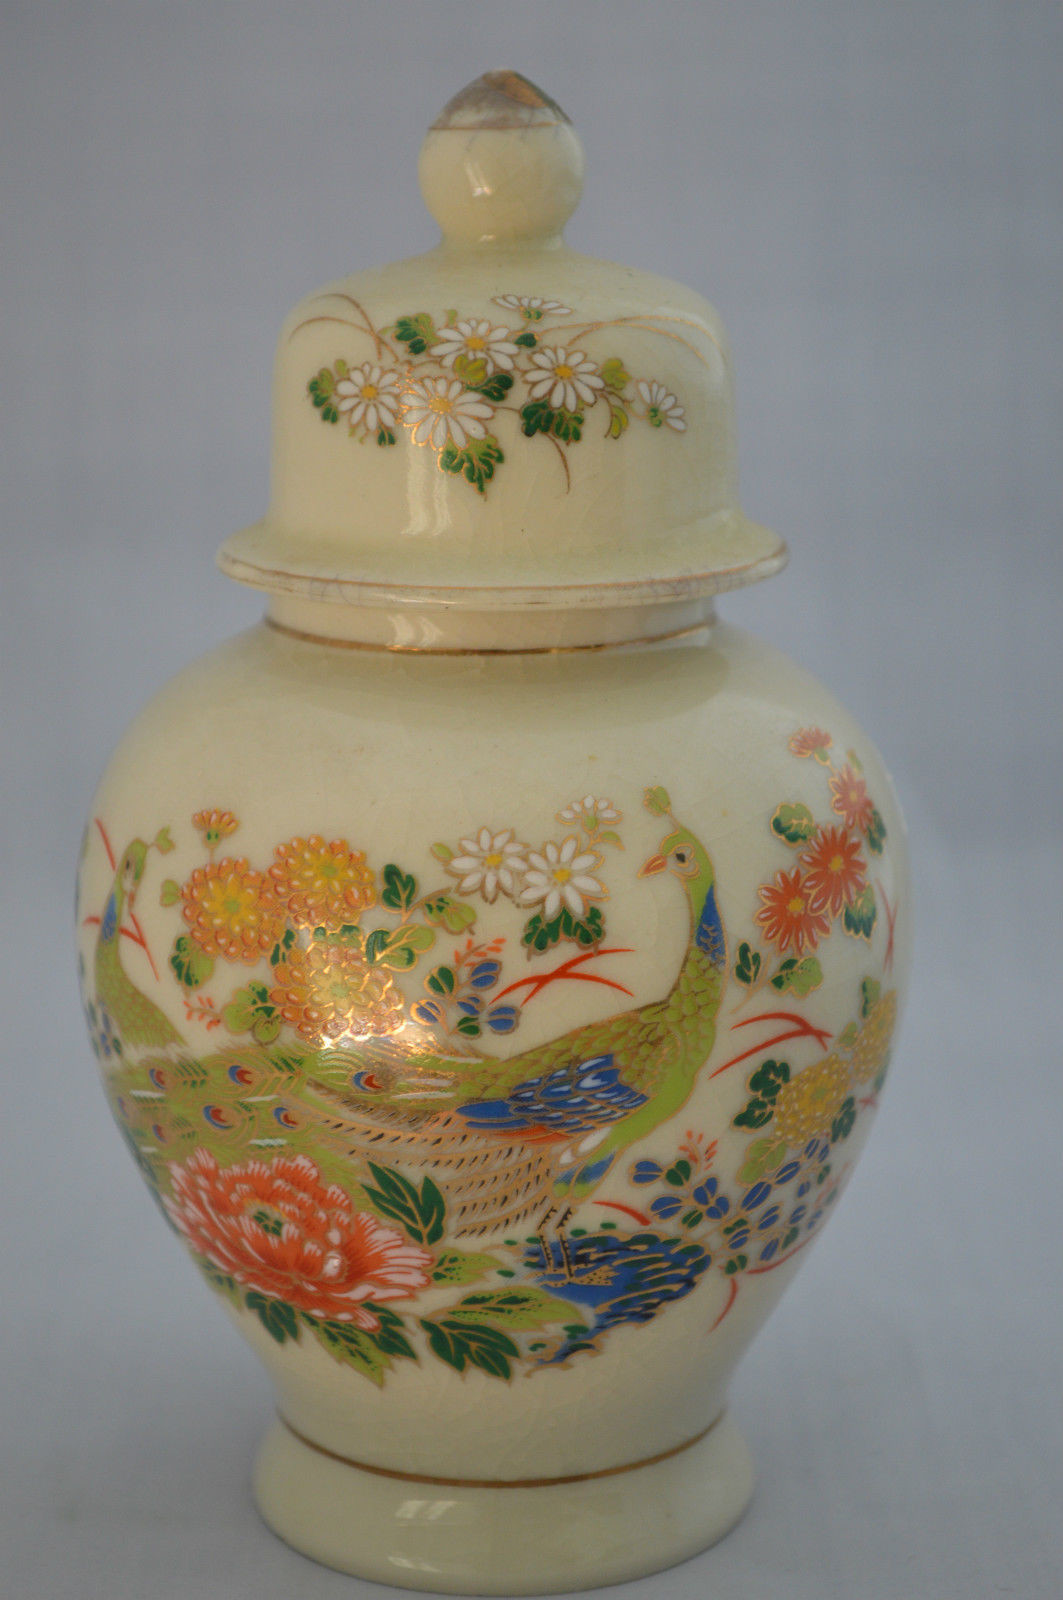 22 Unique Antique Japanese Porcelain Vases